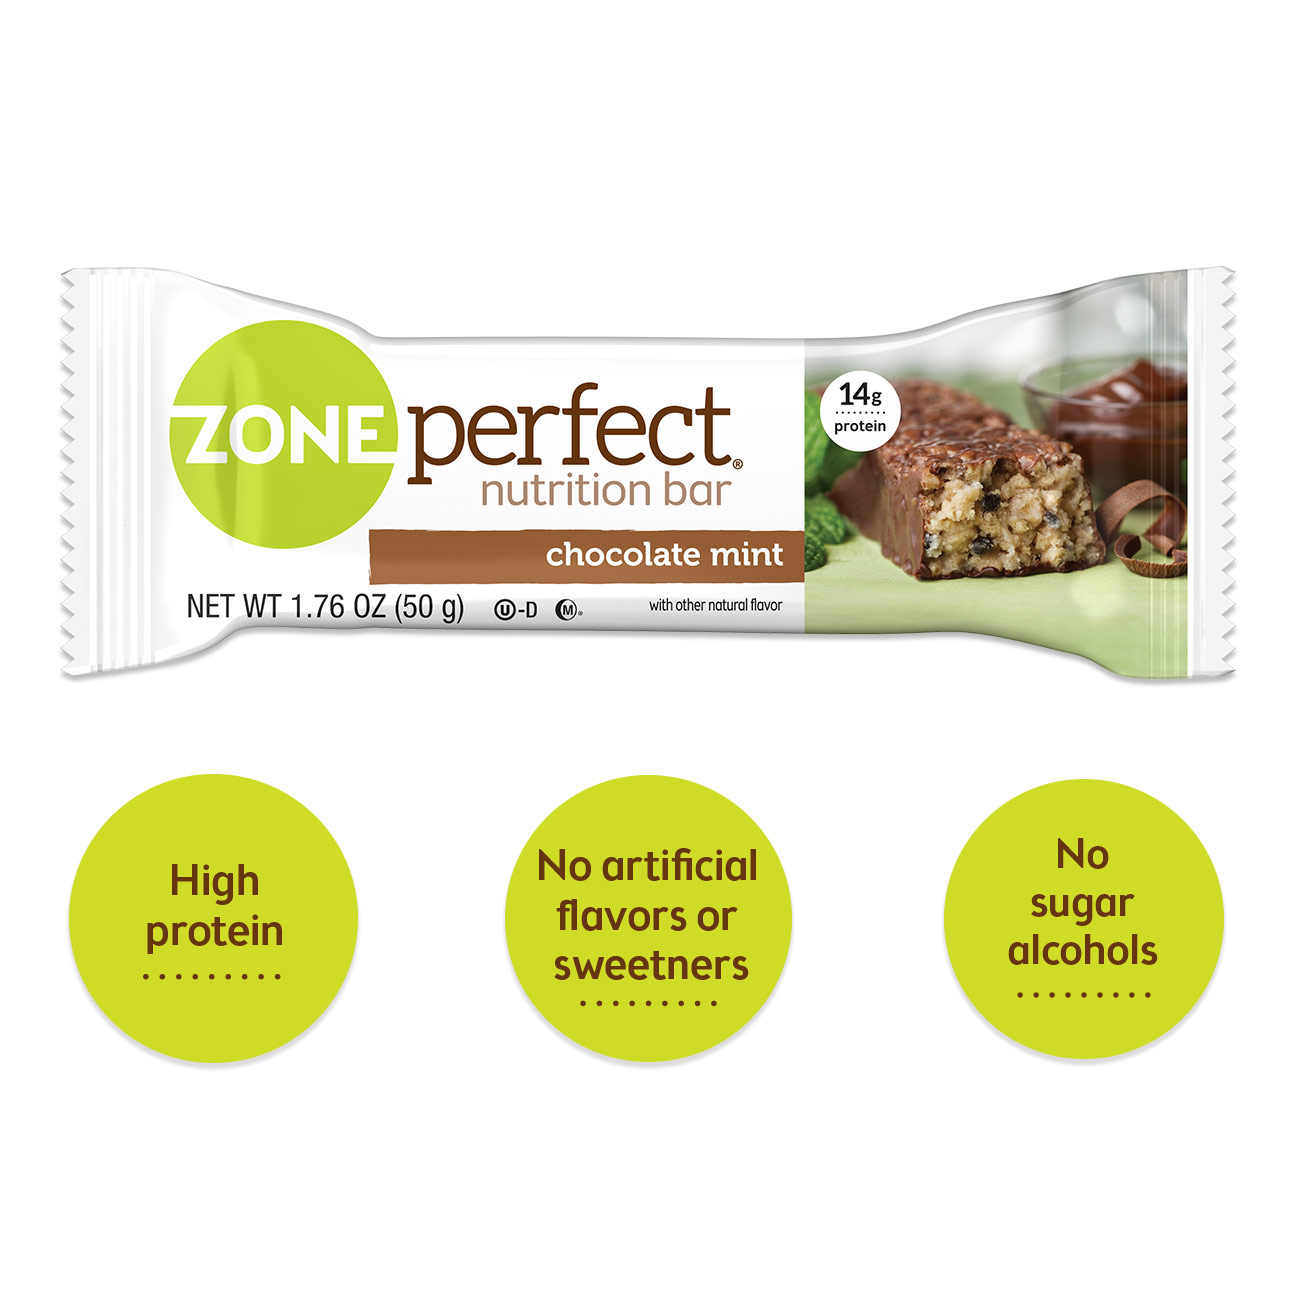 ZonePerfect Bar, 14 Grams of Protein, Chocolate Mint, 1.76 Oz, 10 Ct